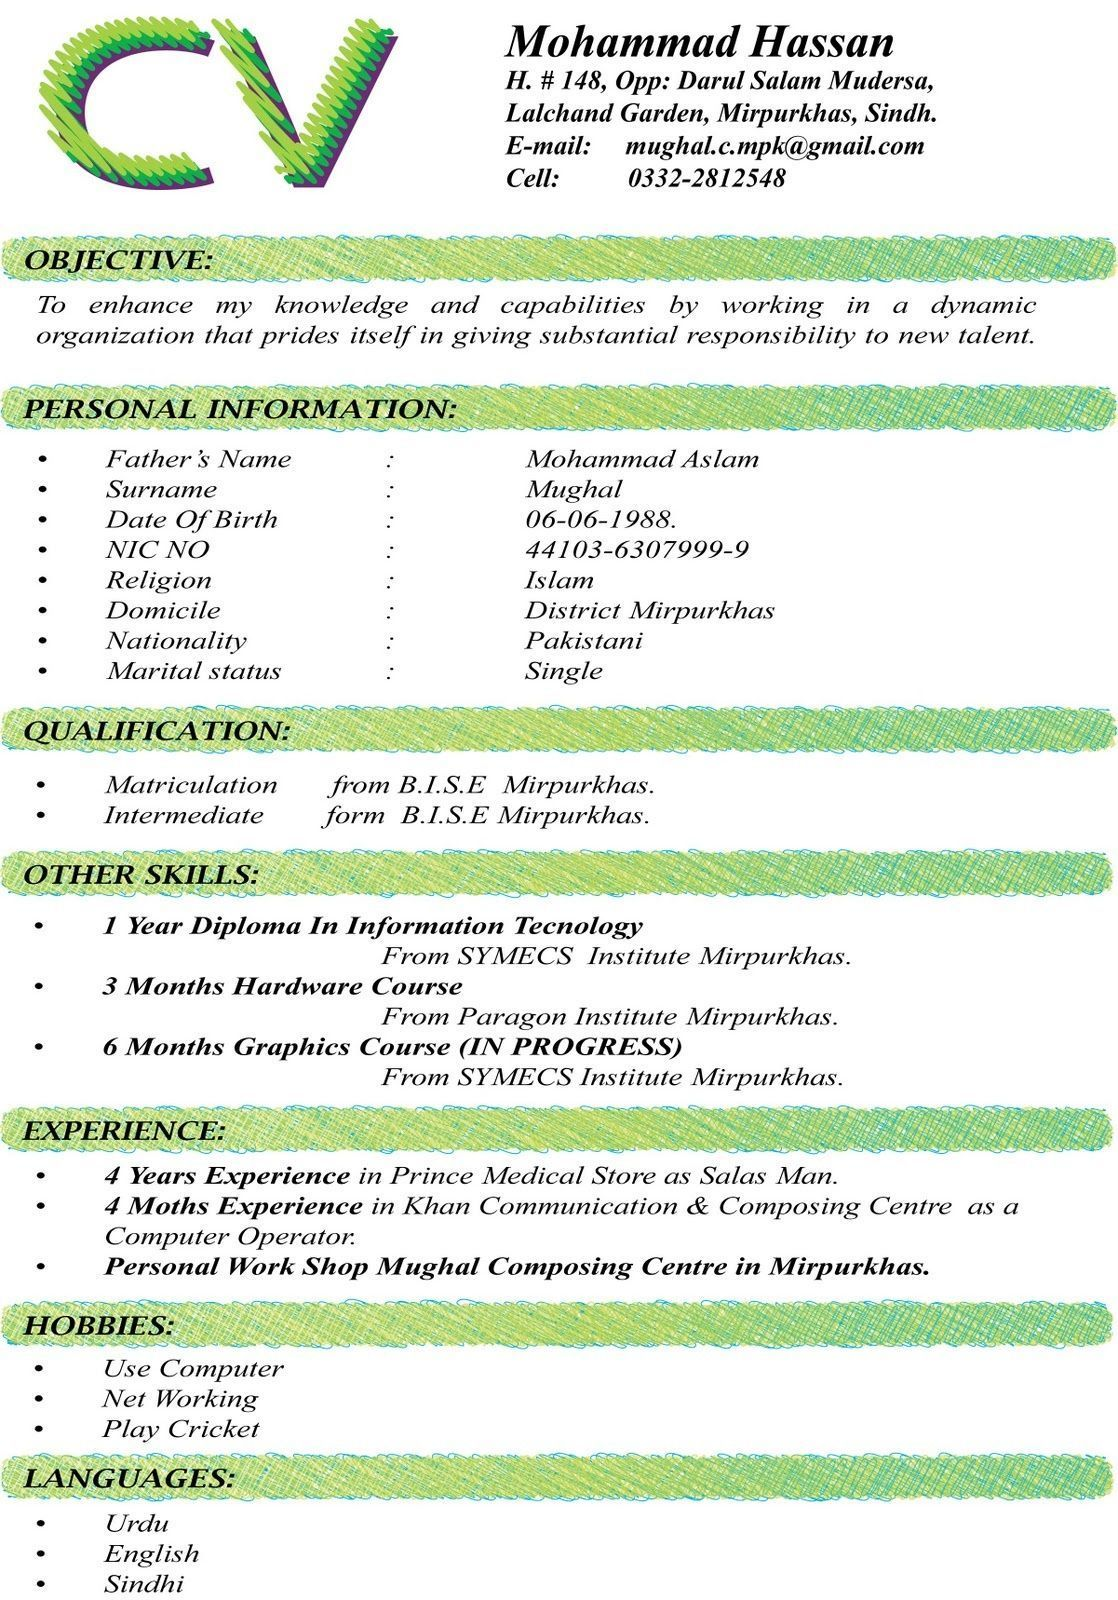 12 Cv Format In Ms Word 2007 Free Download Port By New Resume Resume Format For Freshers Cv Format Cv Format For Job